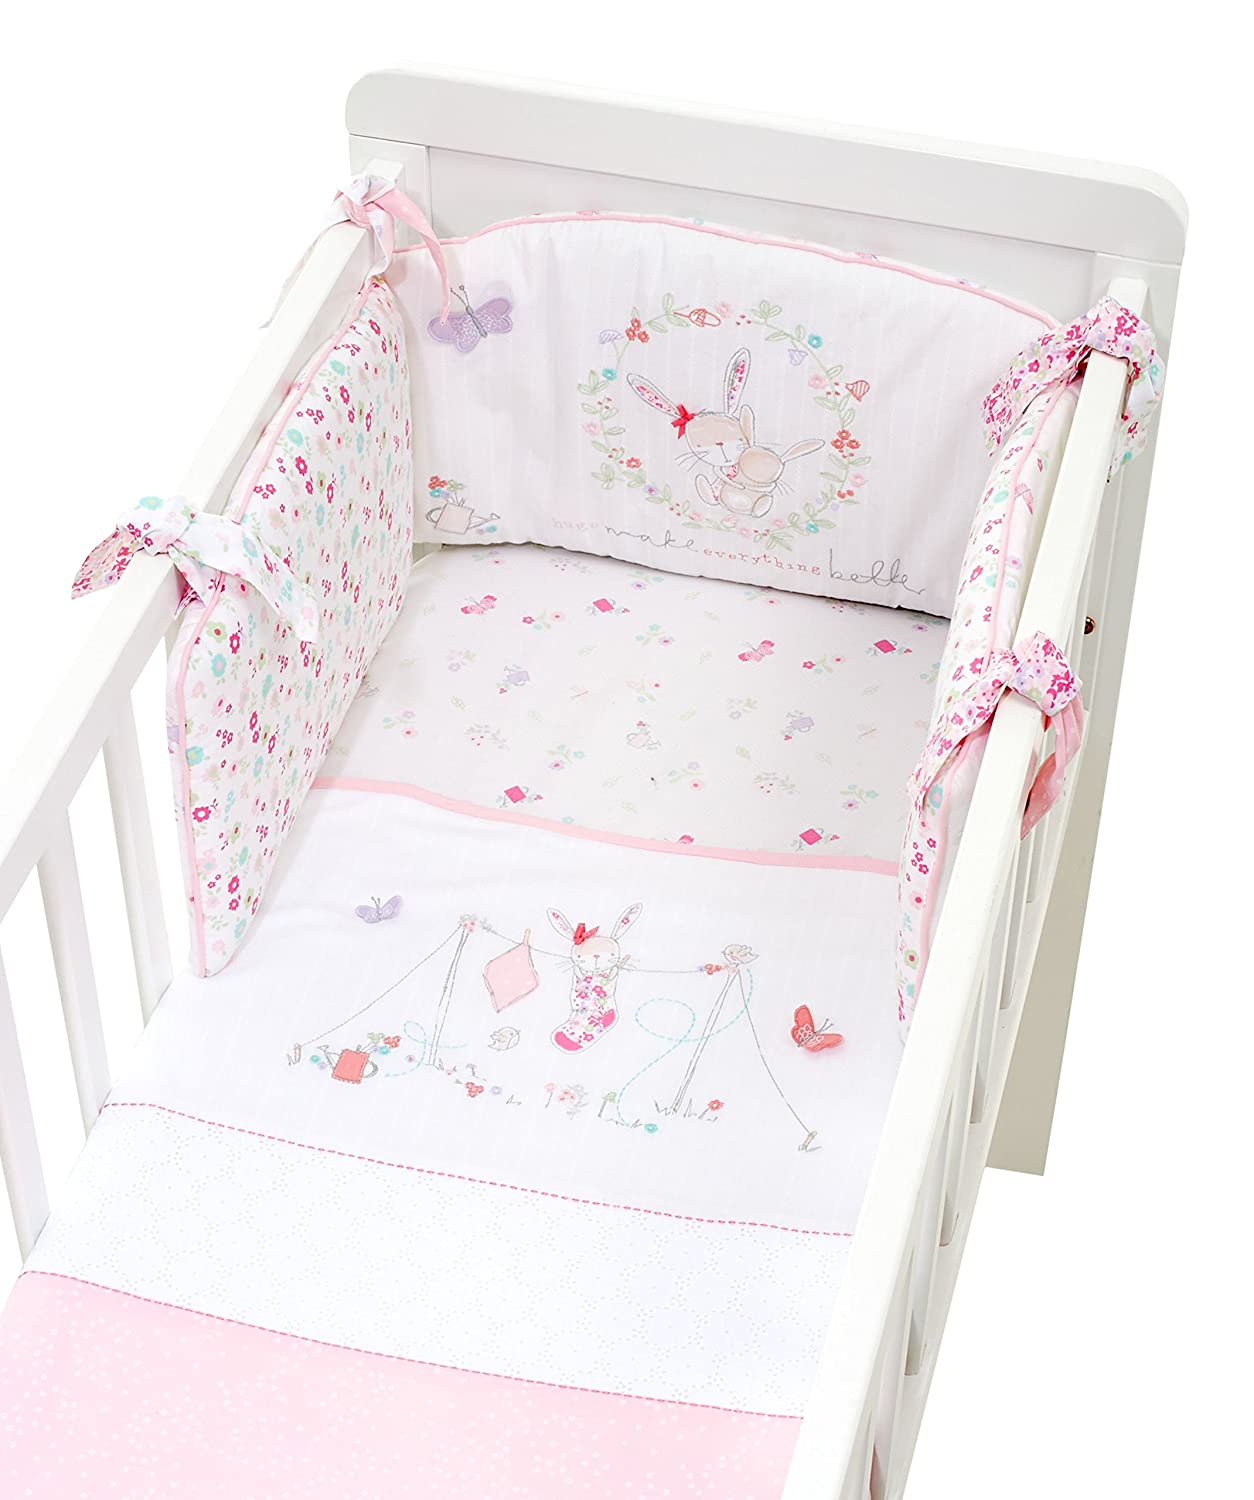 Mothercare Crib Bale (Space Dreamer) 825872